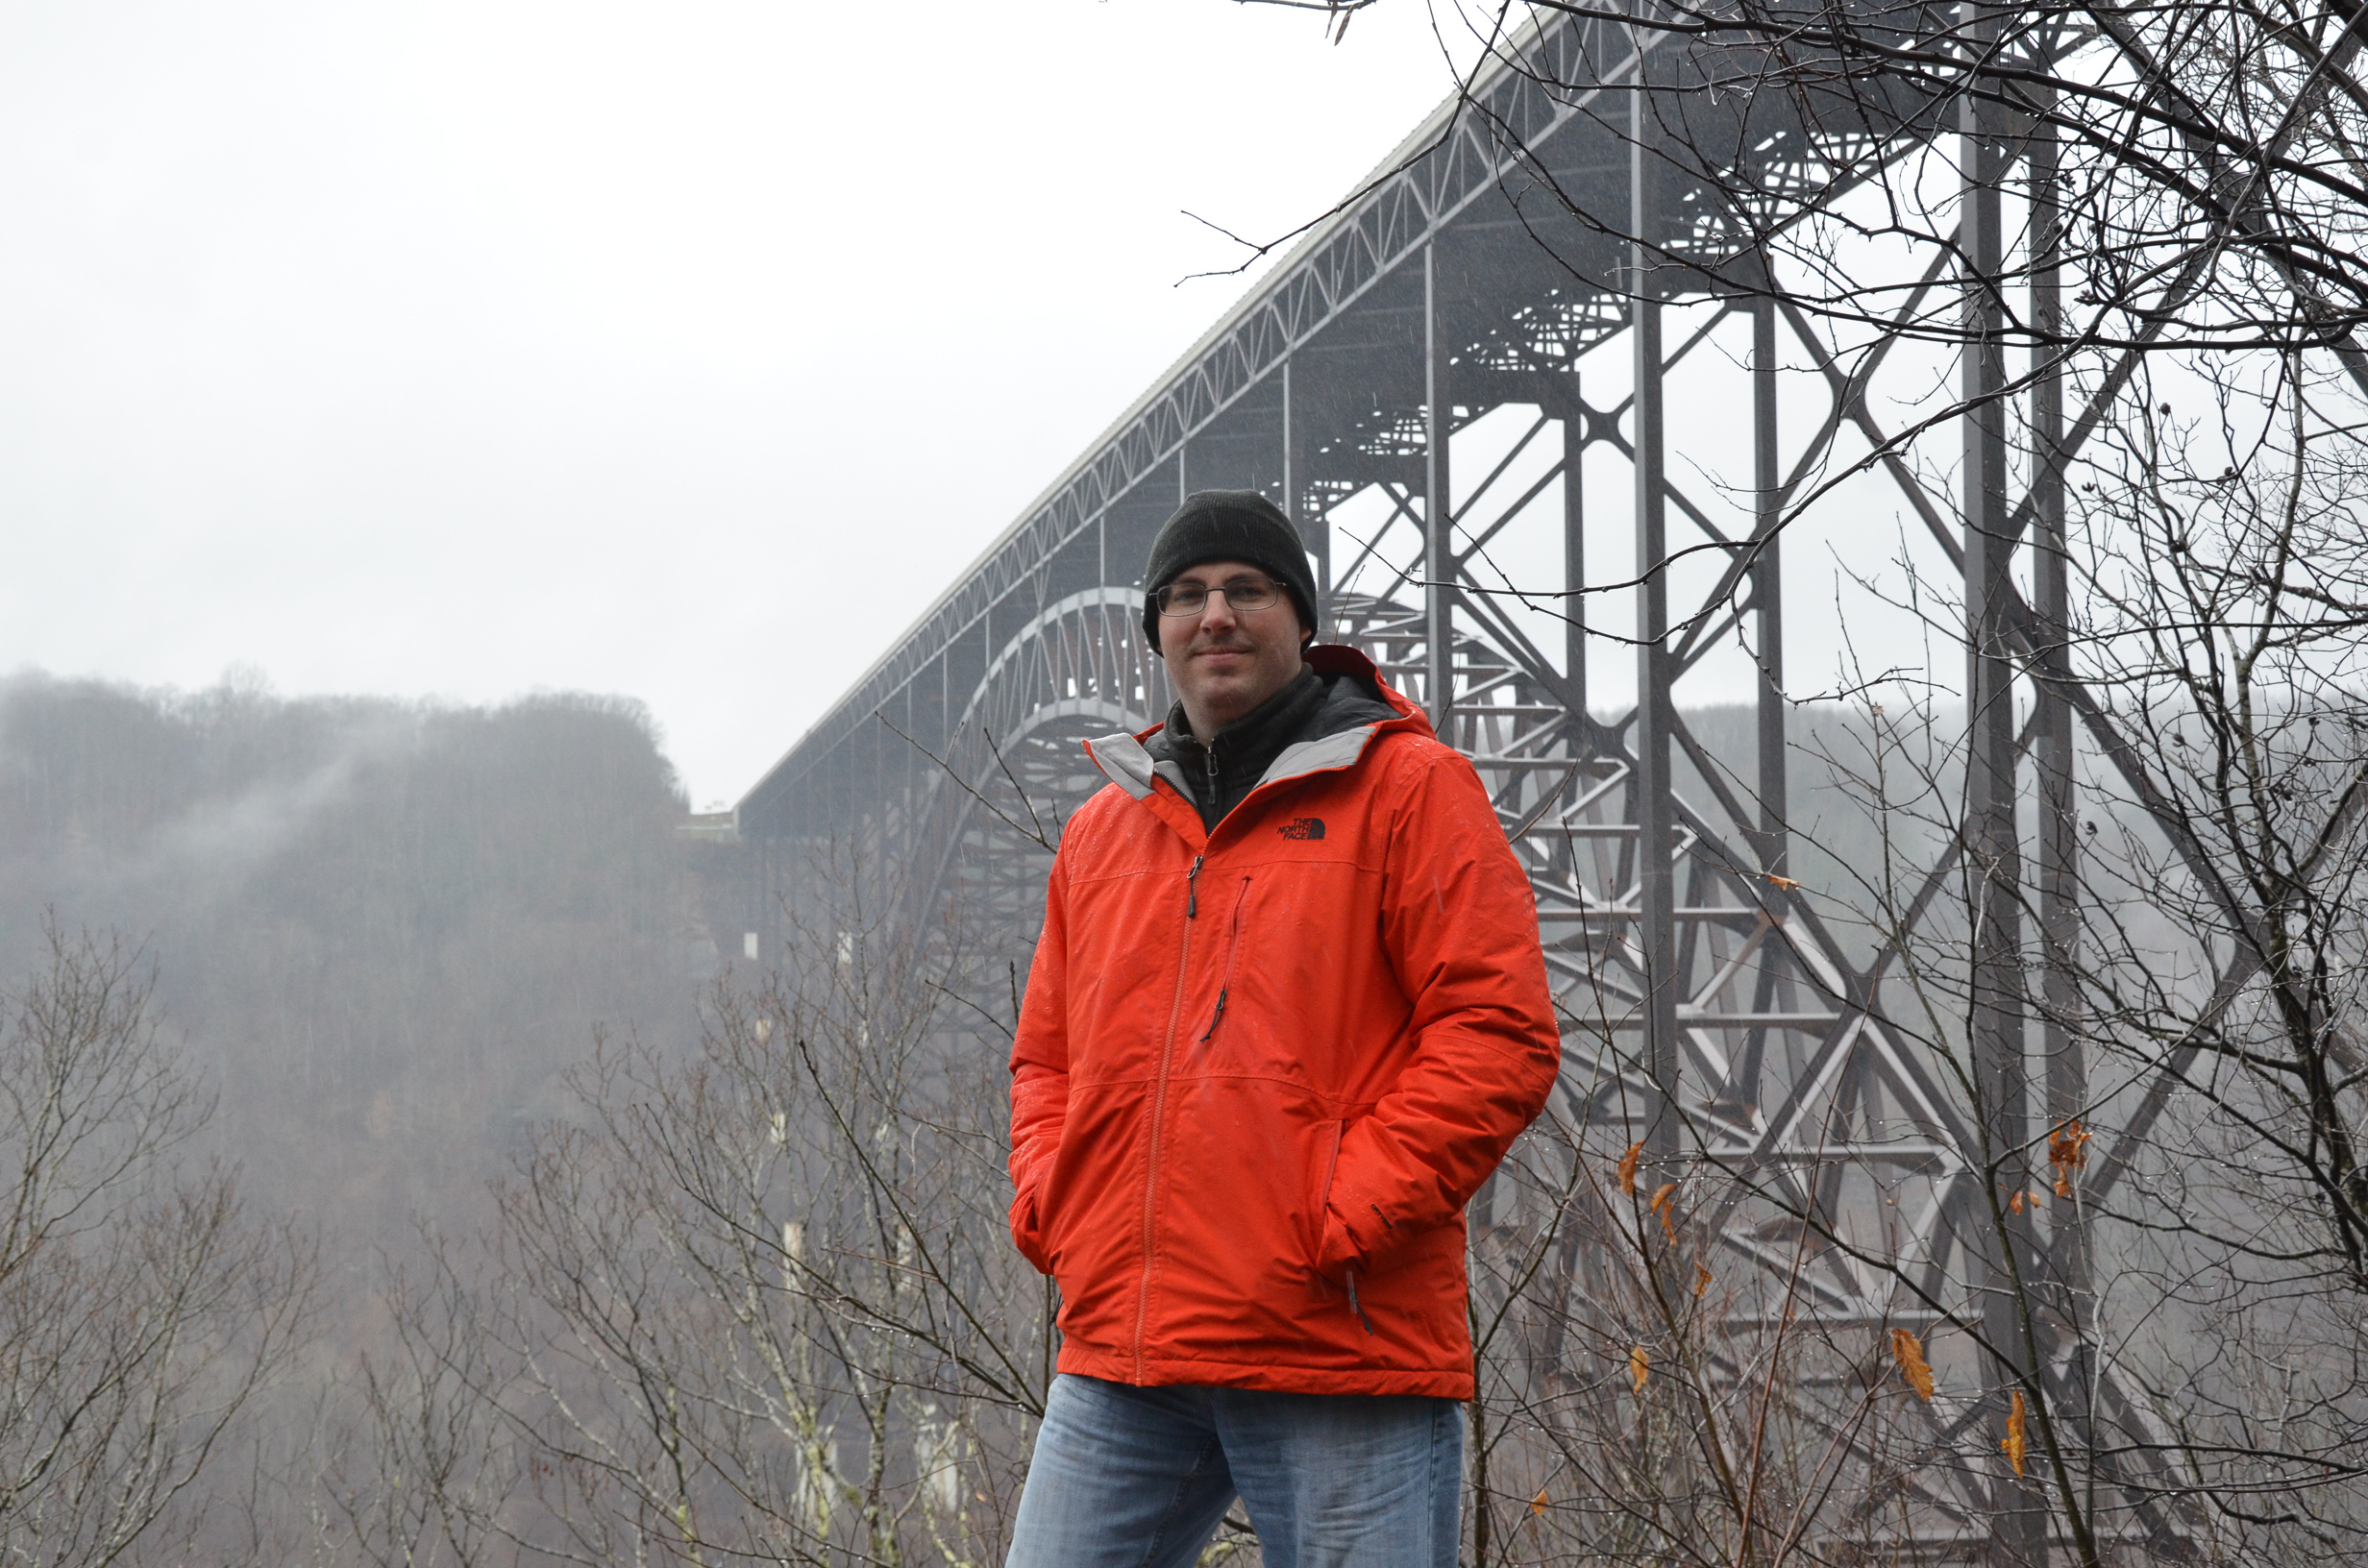 New River Gorge, West Virginia 2018